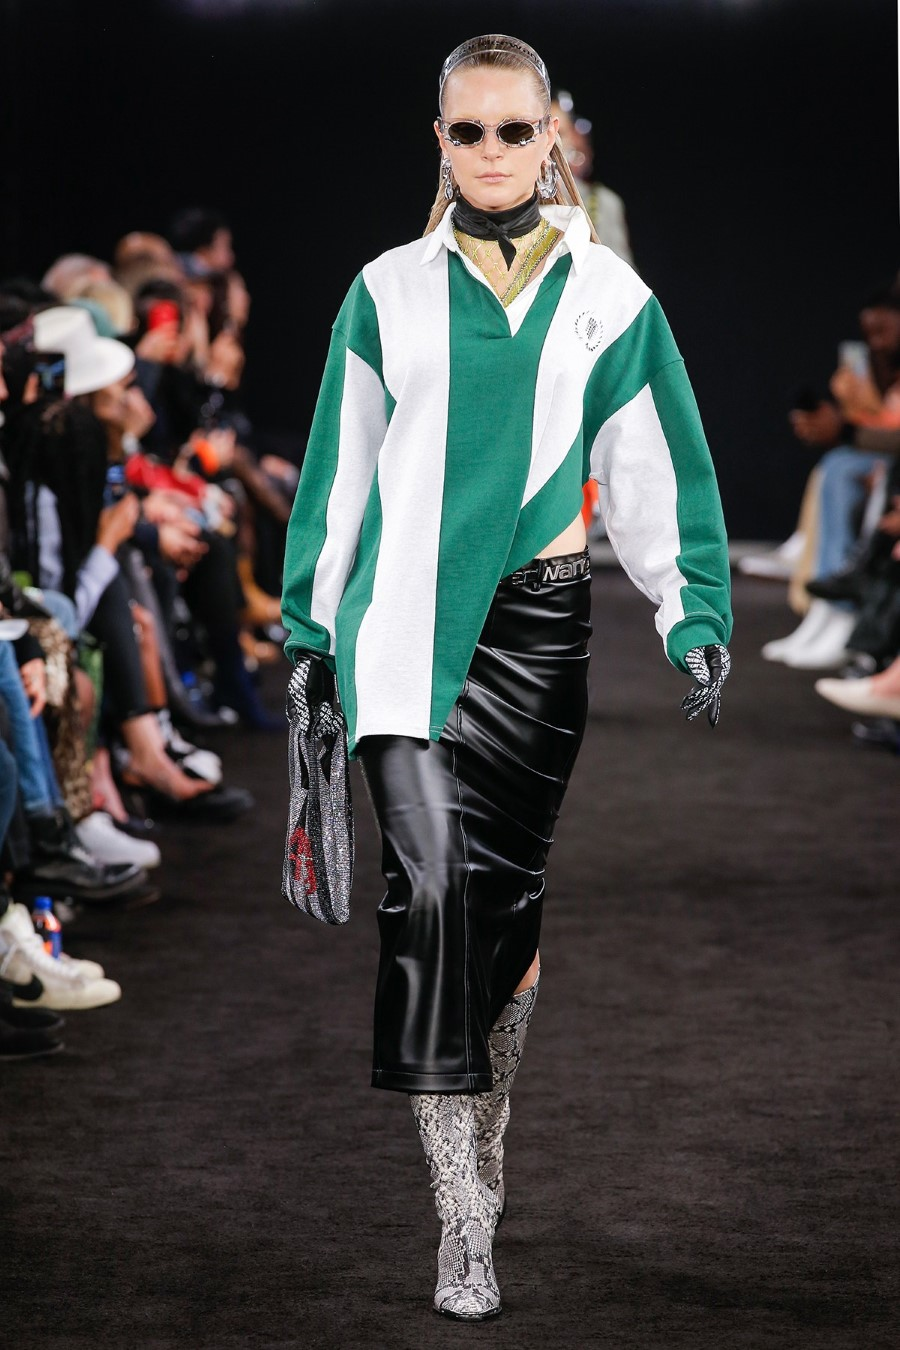 Alexander Wang Collection 2 Pre-Fall 2019